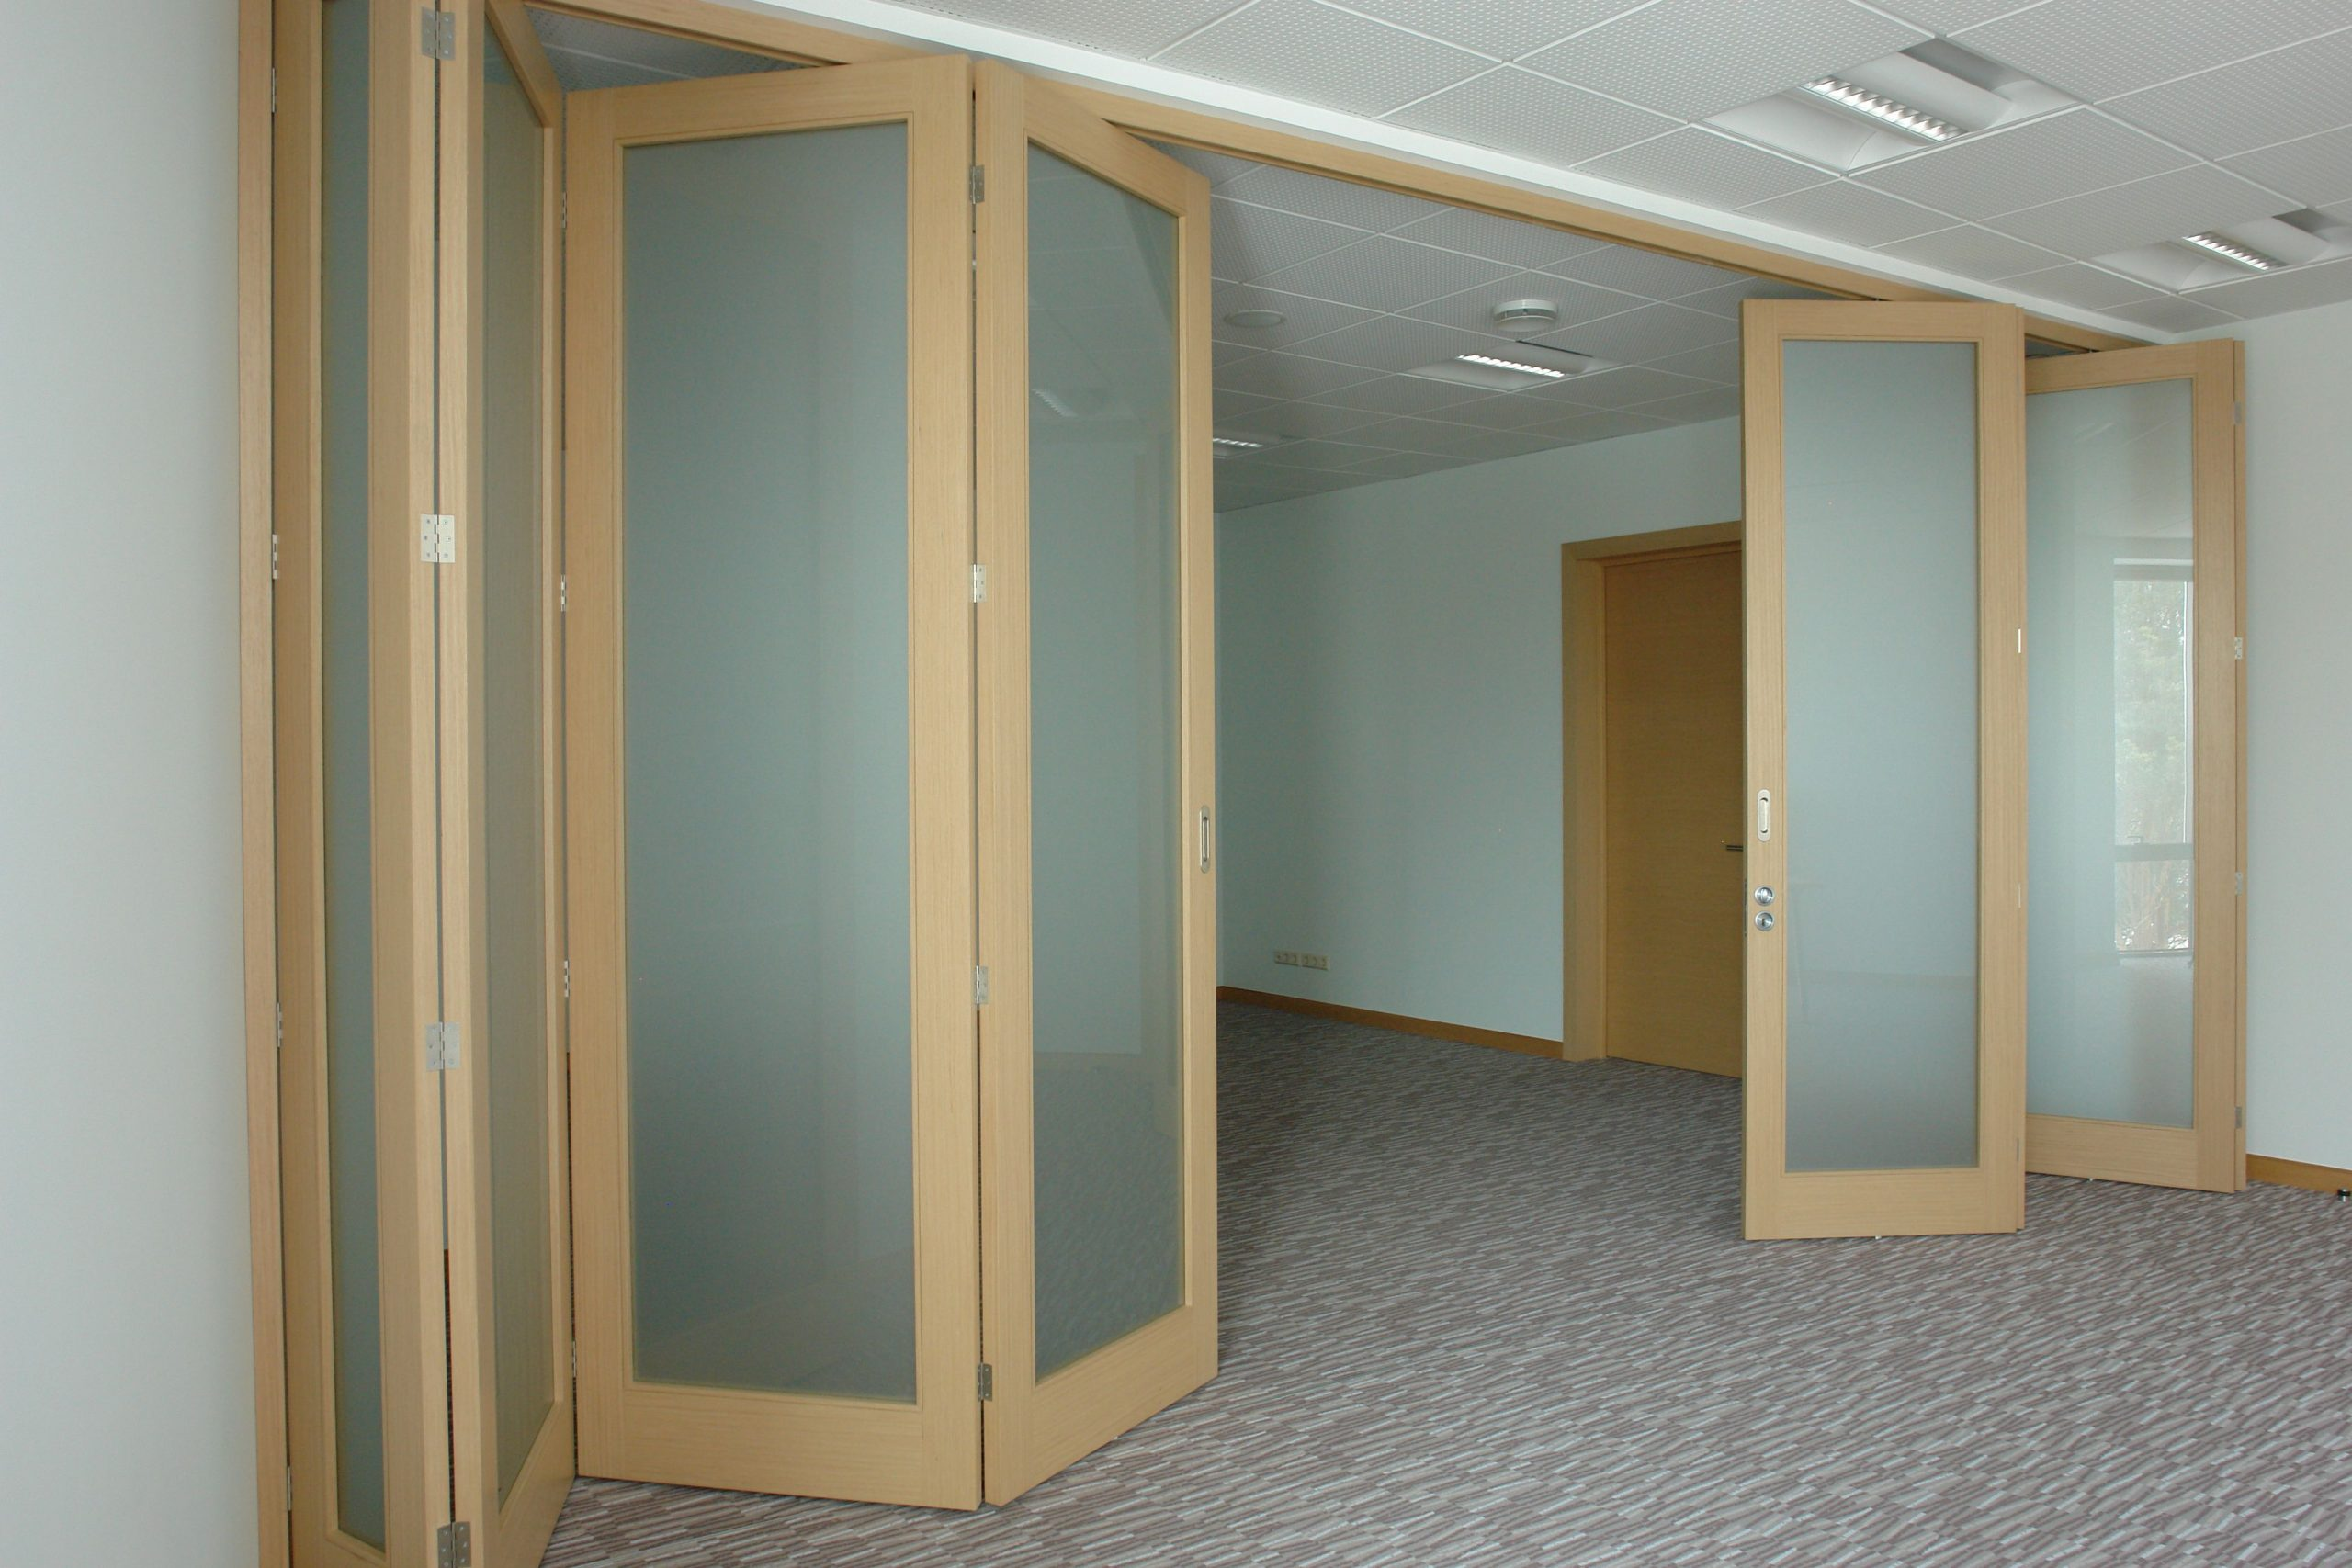 41380e246201f187e2c1d1f4c4639727 scaled - The Benefits Of Folding Partitions